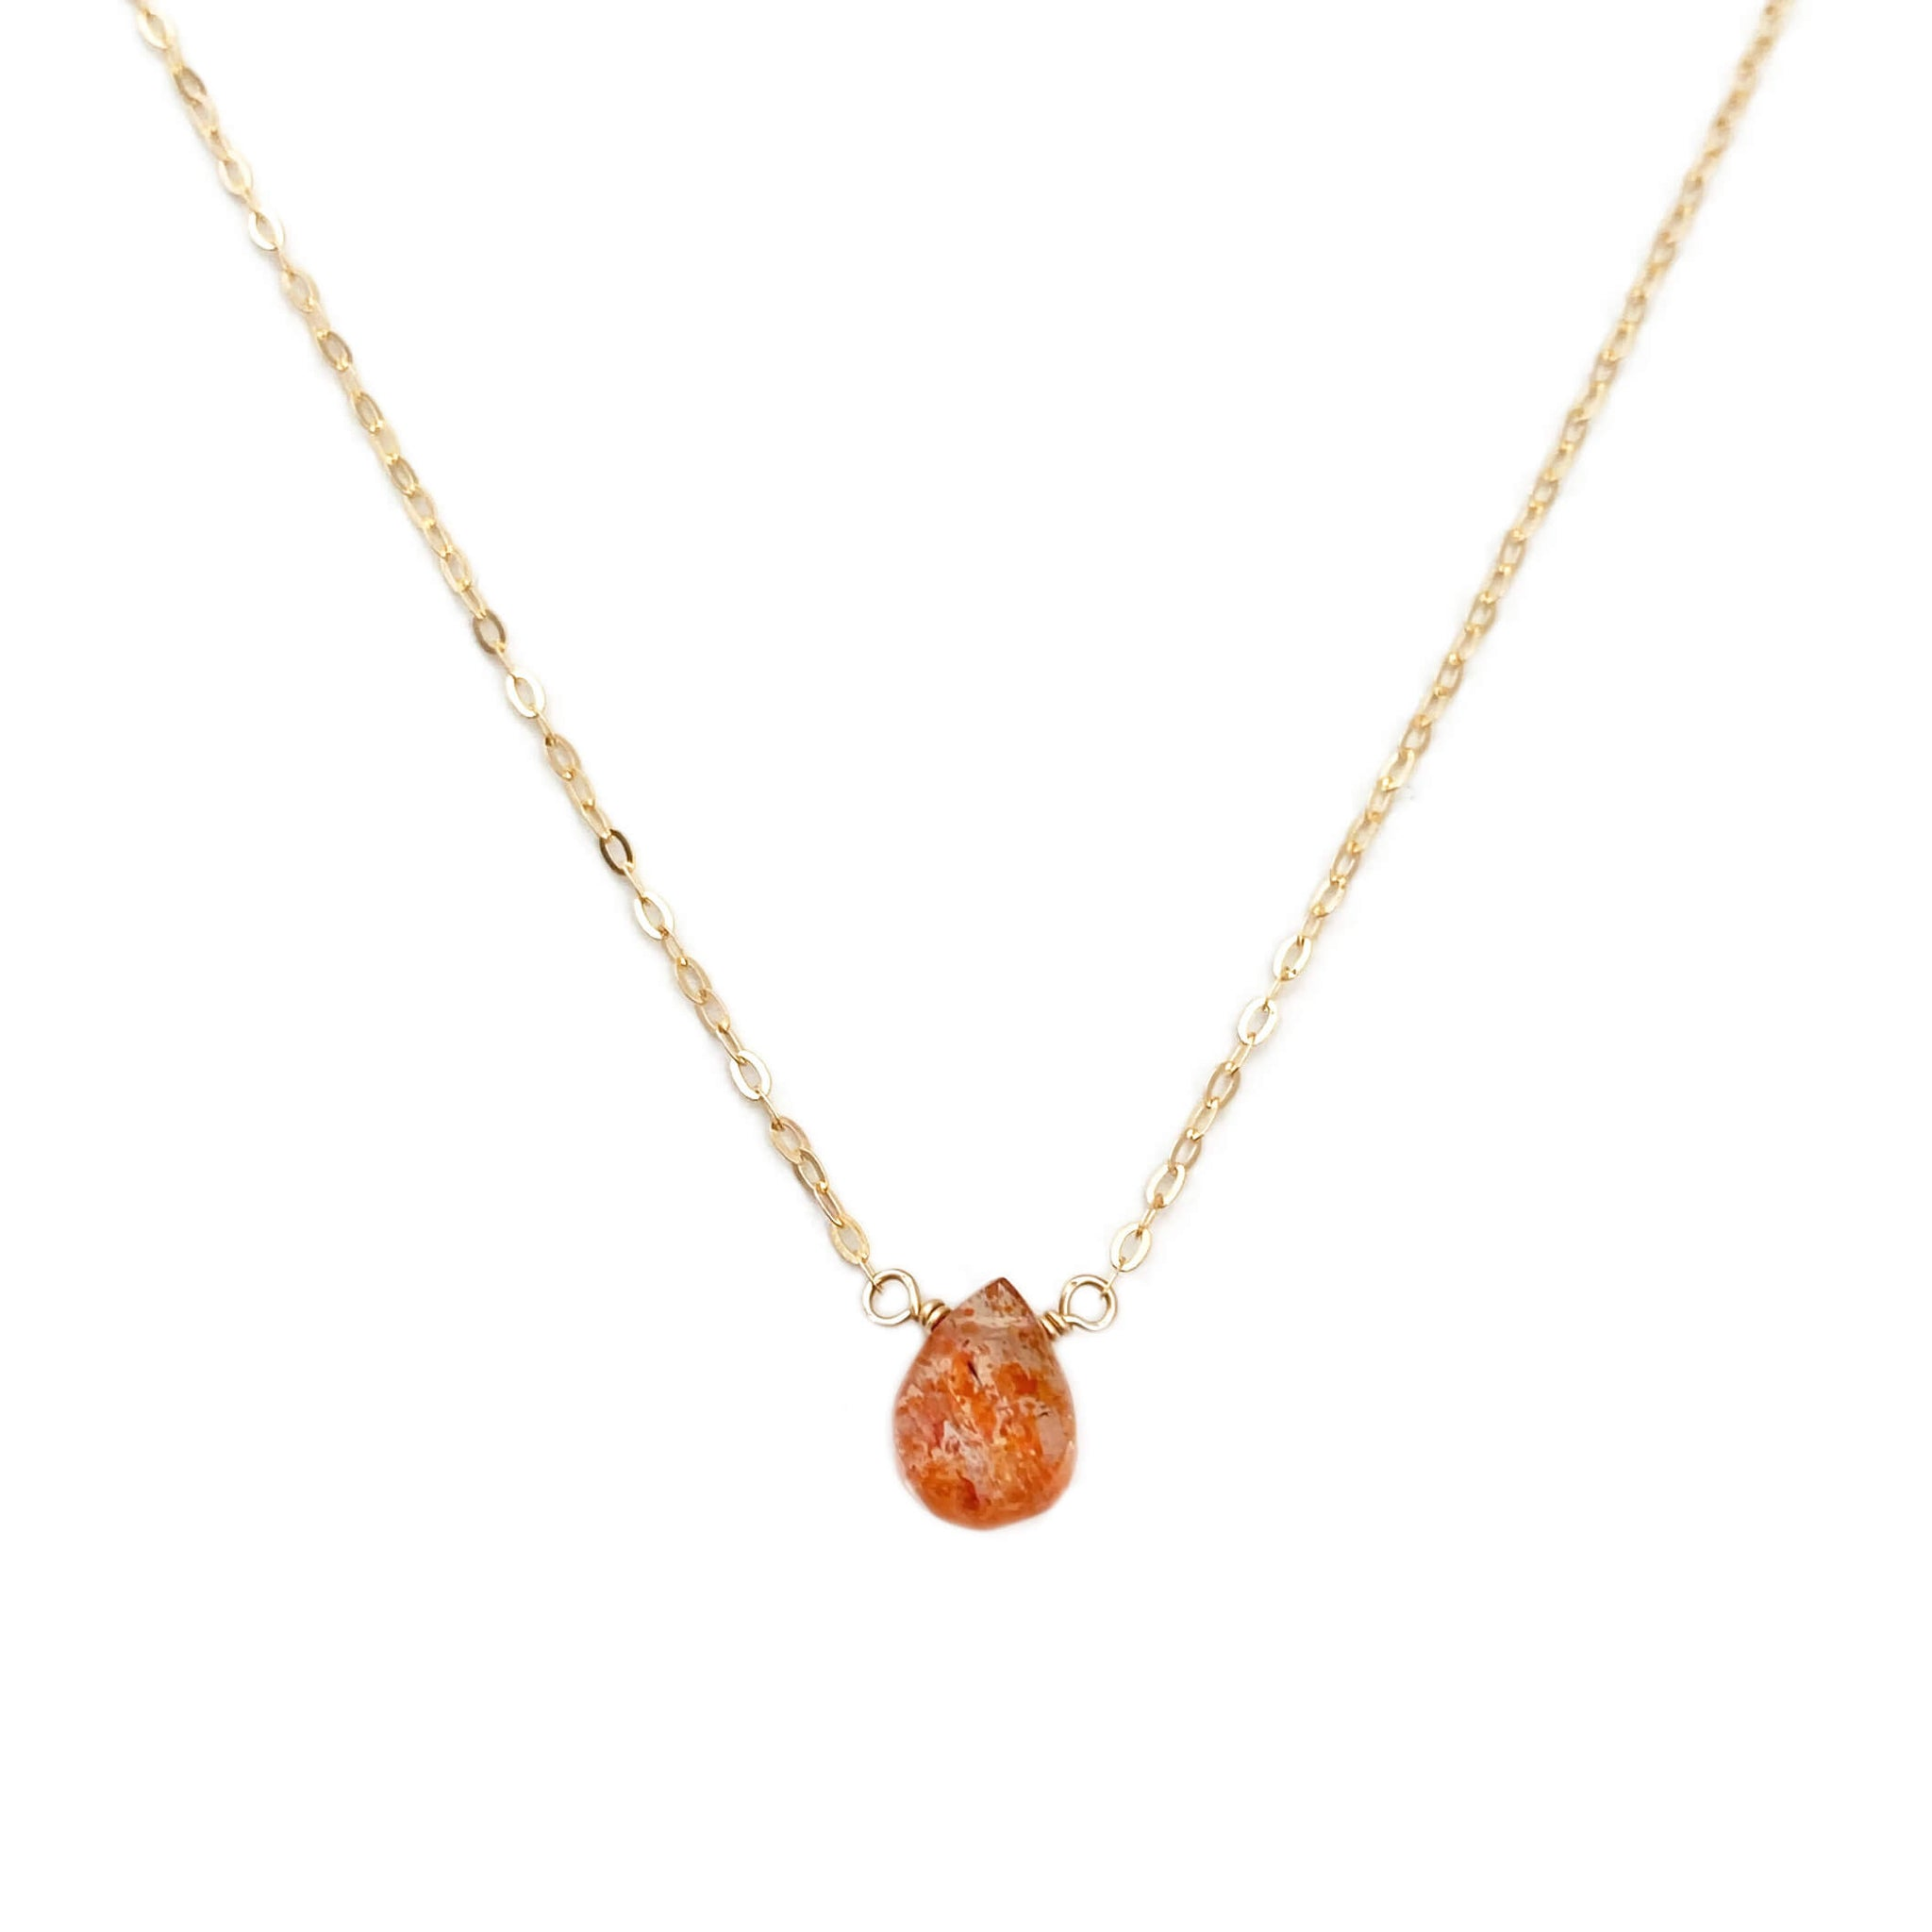 This Oregon sunstone necklace is made with a single hand-picked sunstone, a gem that is known for its glittery effect, and this dainty necklace is perfect for a casual look.